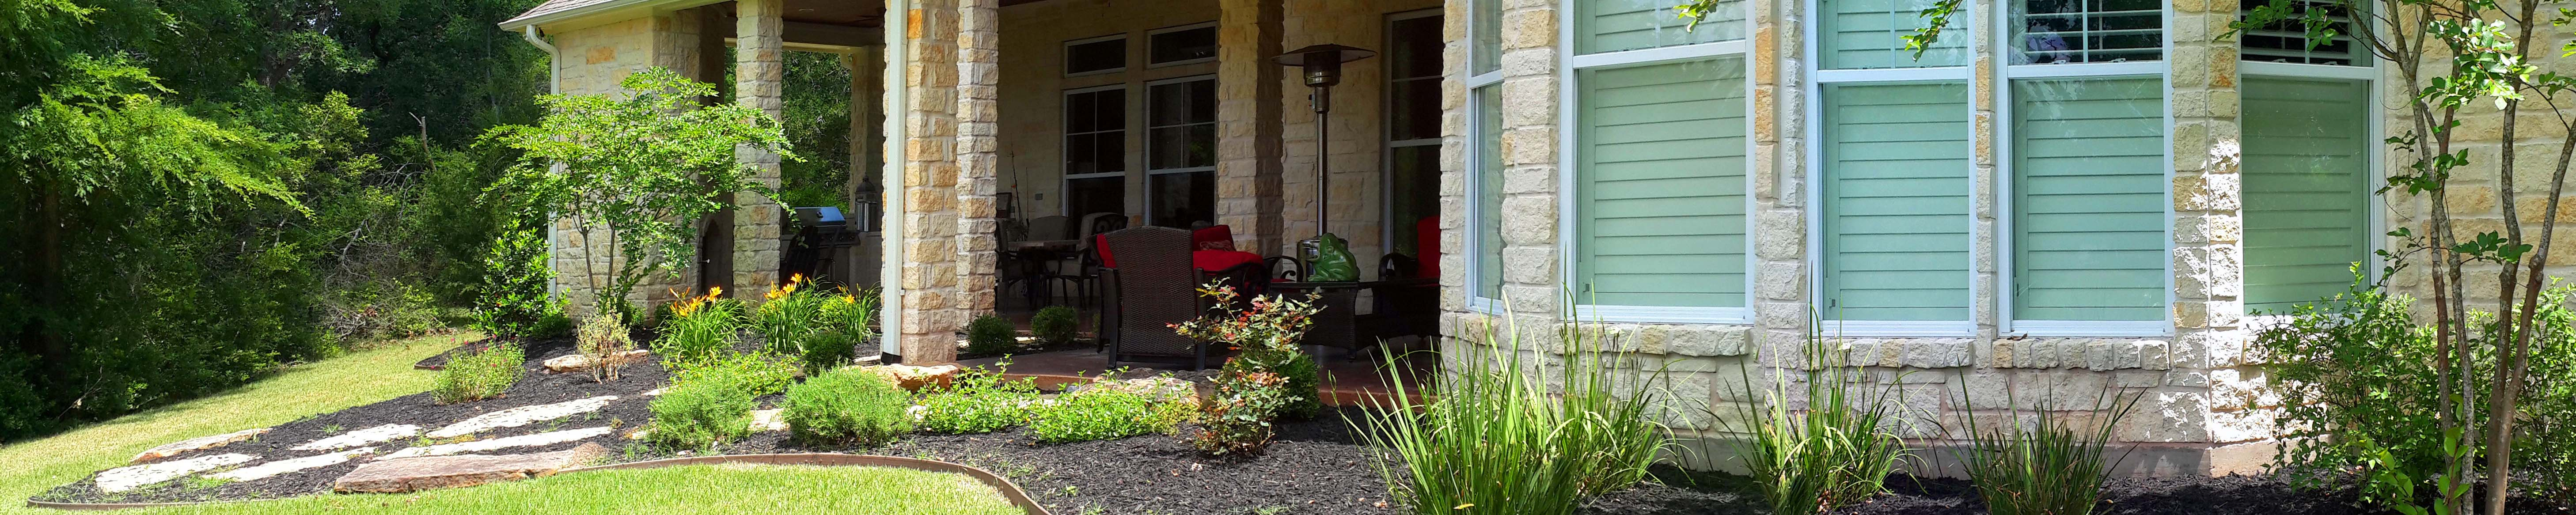 residential-landscaping-services-in-round-rock-college-station-texas